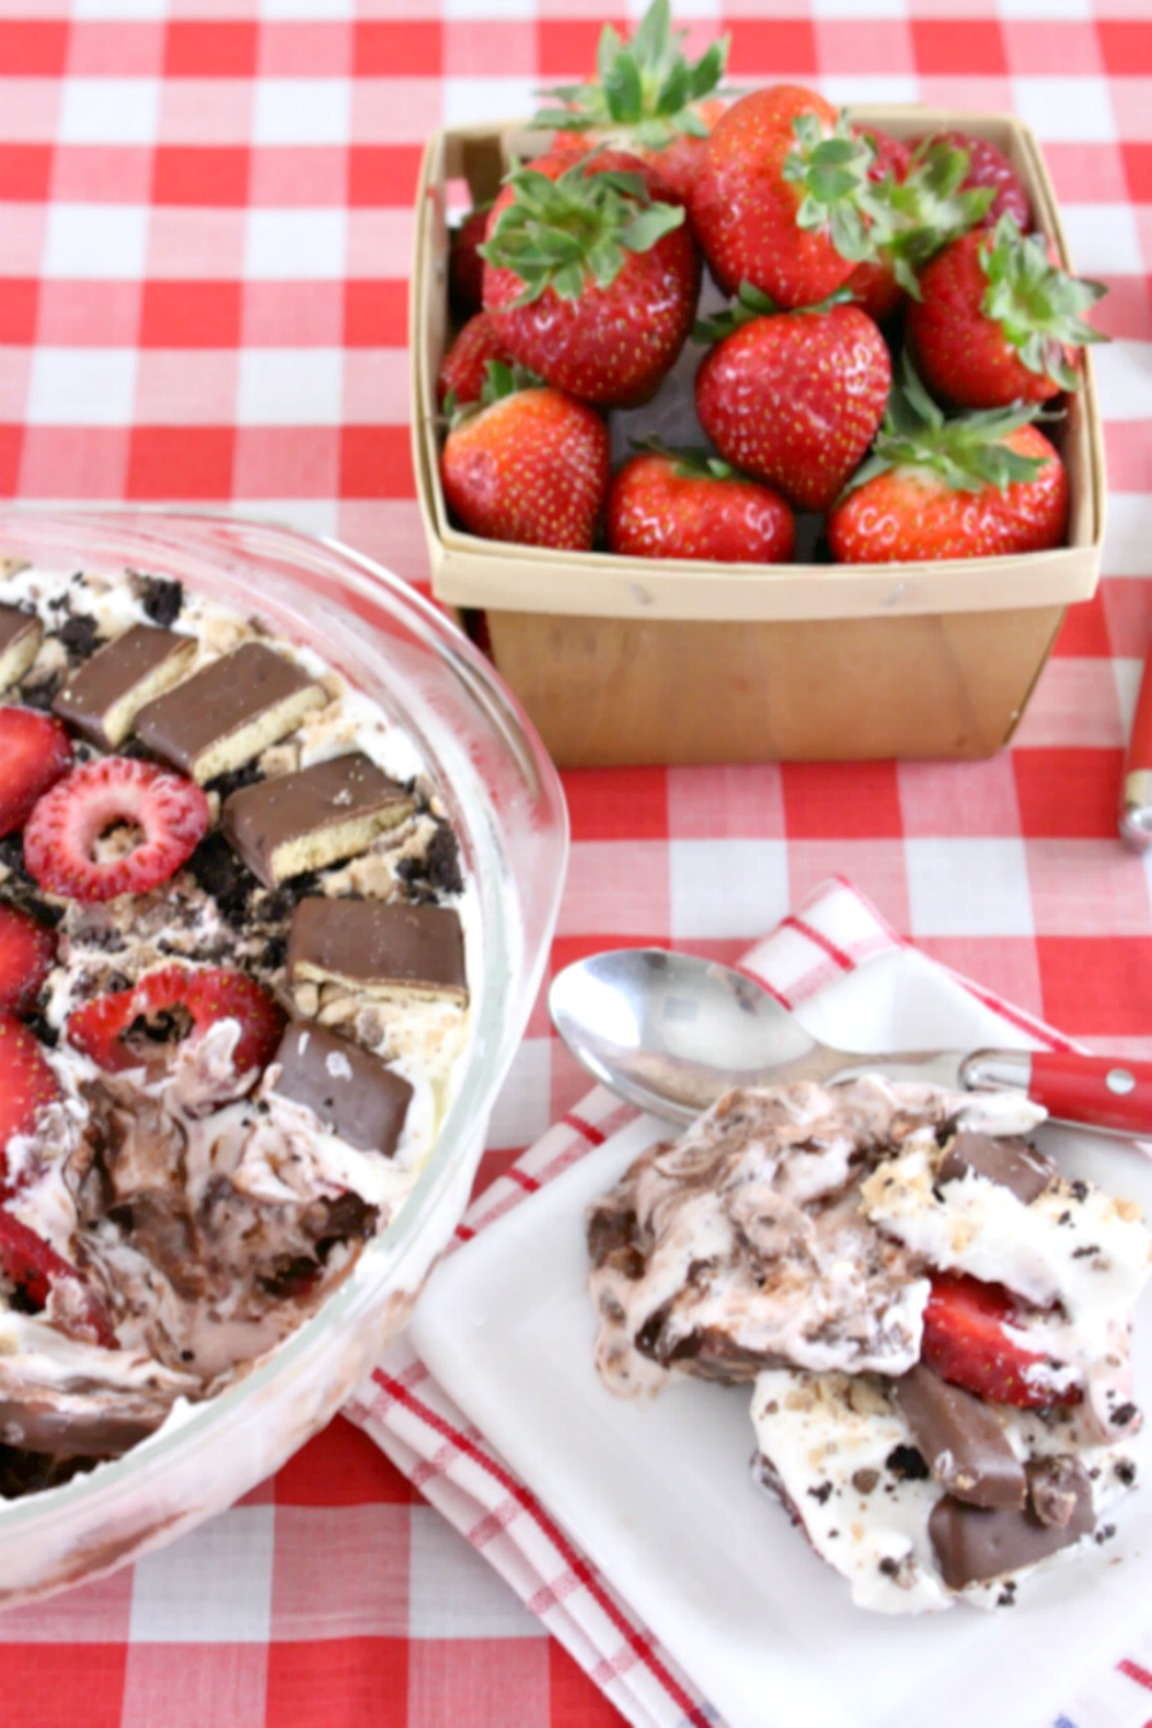 Keep that whipped topping and pudding mix handy to layer in this Instagram-worthy chocolate-covered strawberry-inspired icebox cake. Clouds of fluffy cream cheese whipped cream meet decadent chocolate pudding, fresh berries, and chocolate-coated graham crackers in this easy no-bakesummer cake.